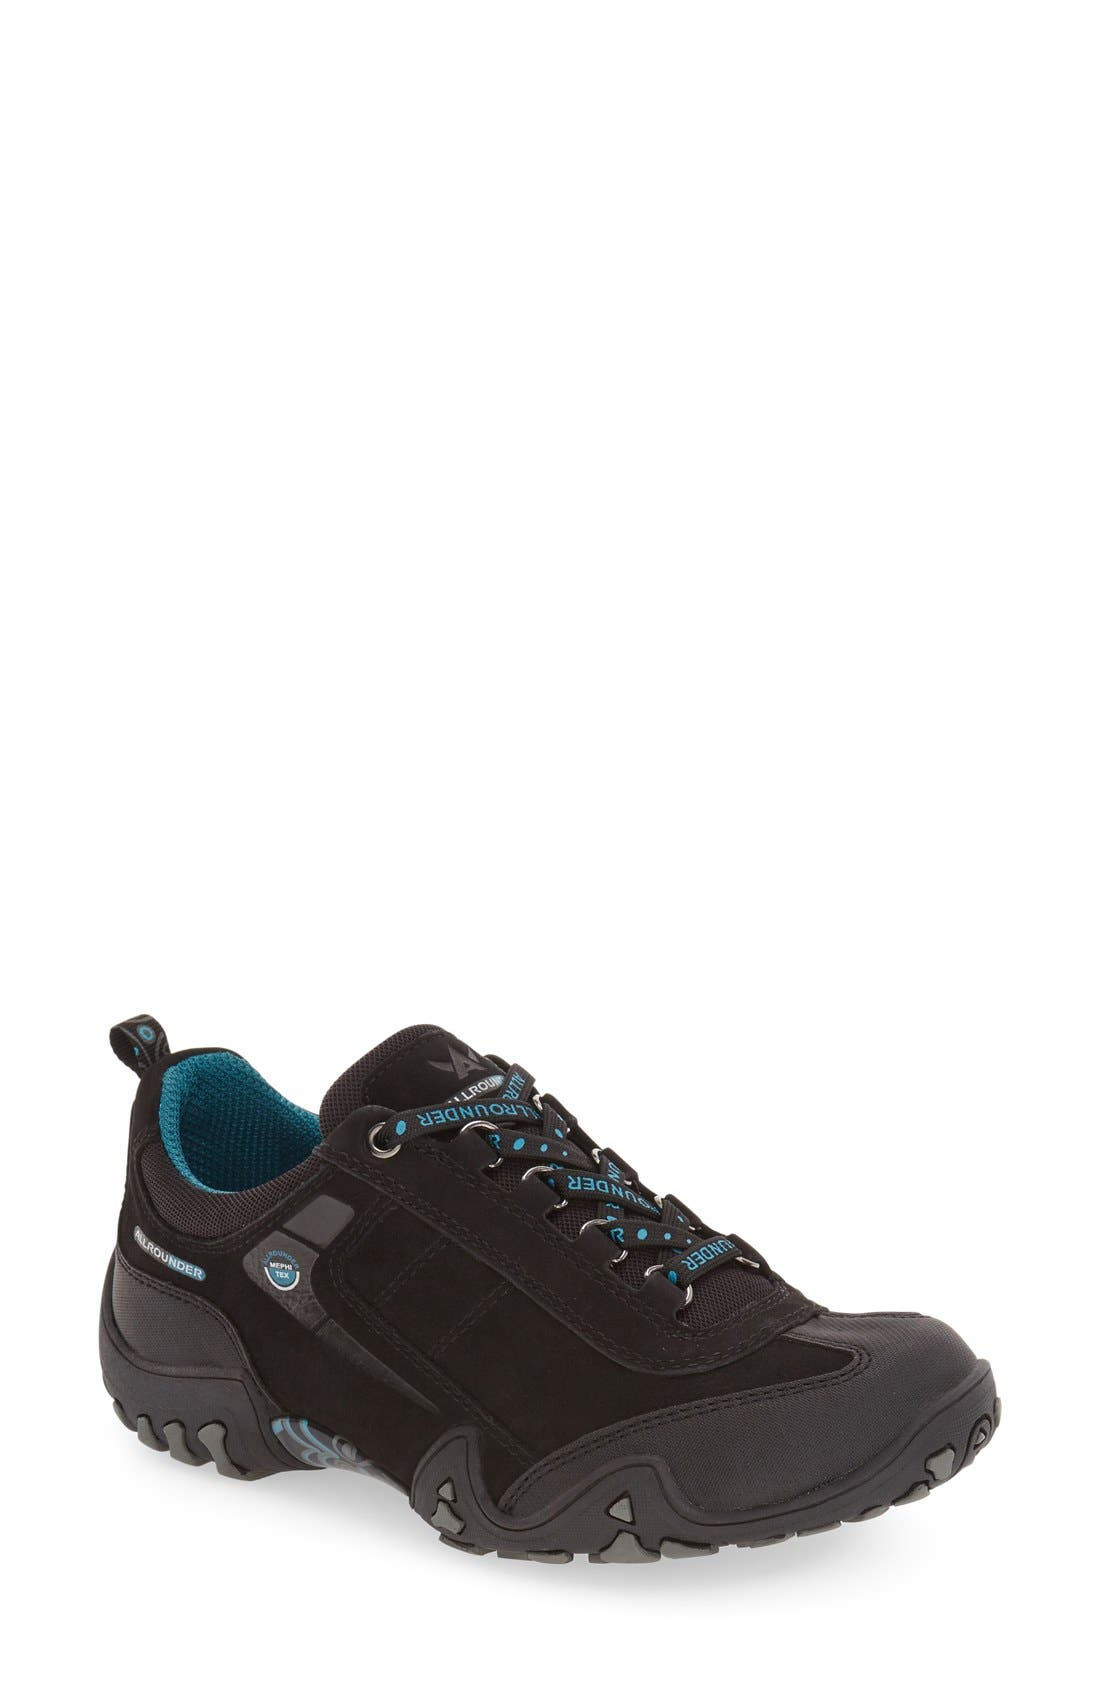 Alternate Image 1 Selected - Allrounder by Mephisto 'Fina-Tex' Sneaker (Women)